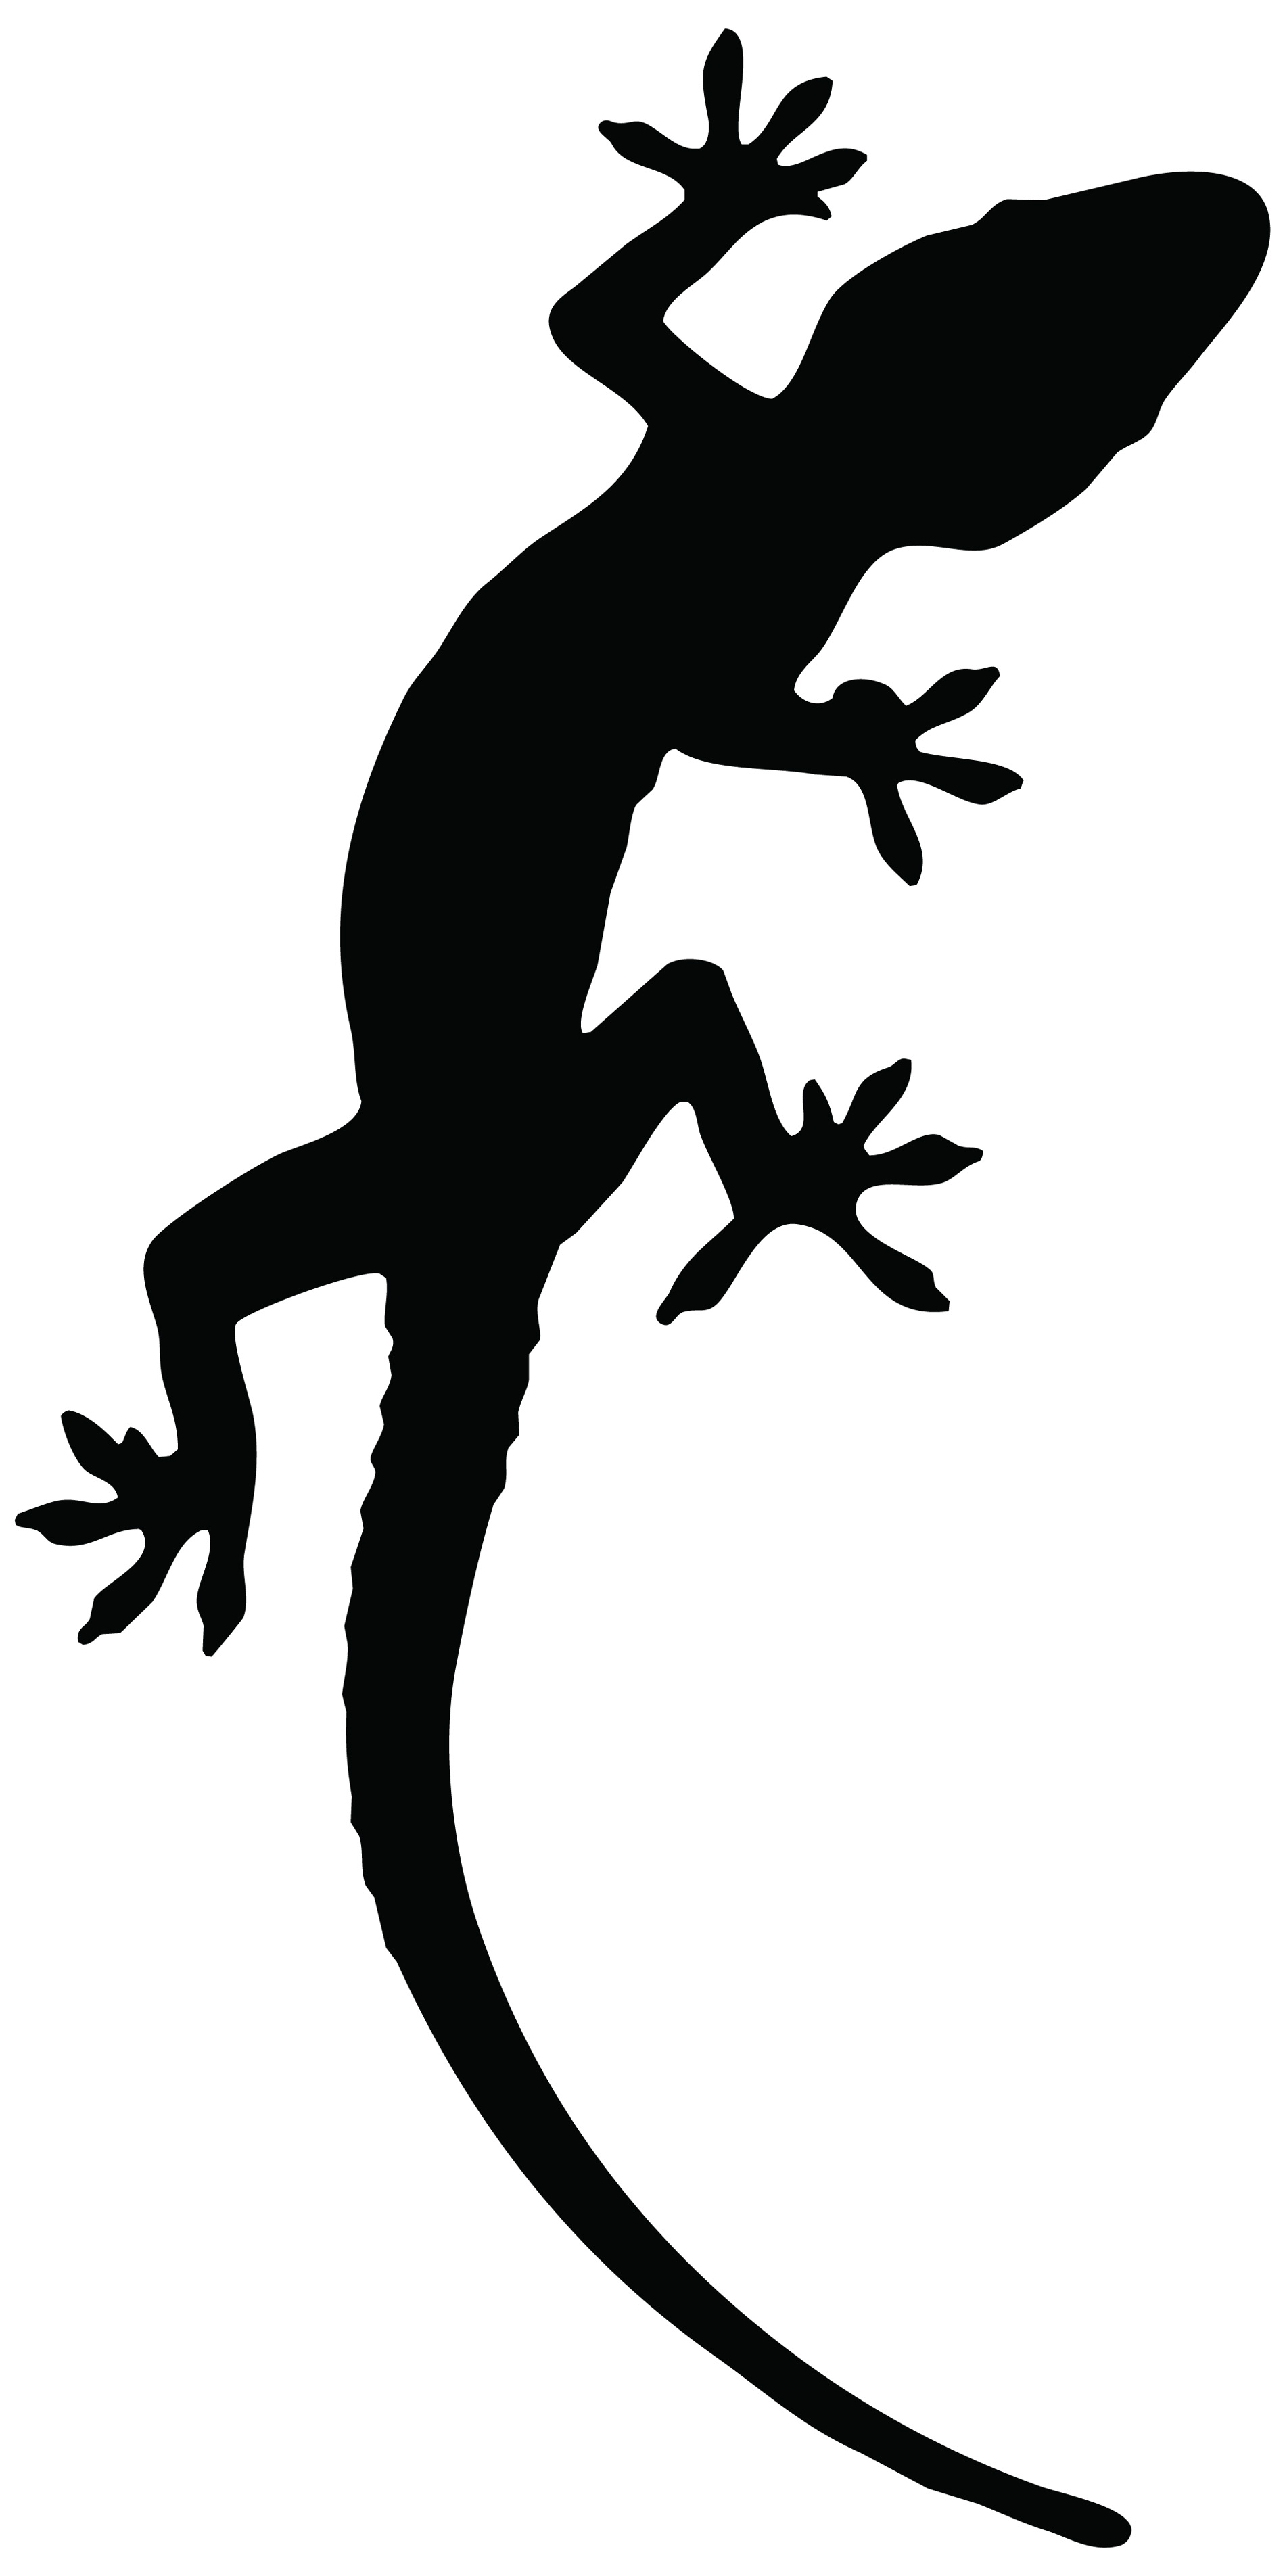 Black Reptile Lizard Tattoo Stencil